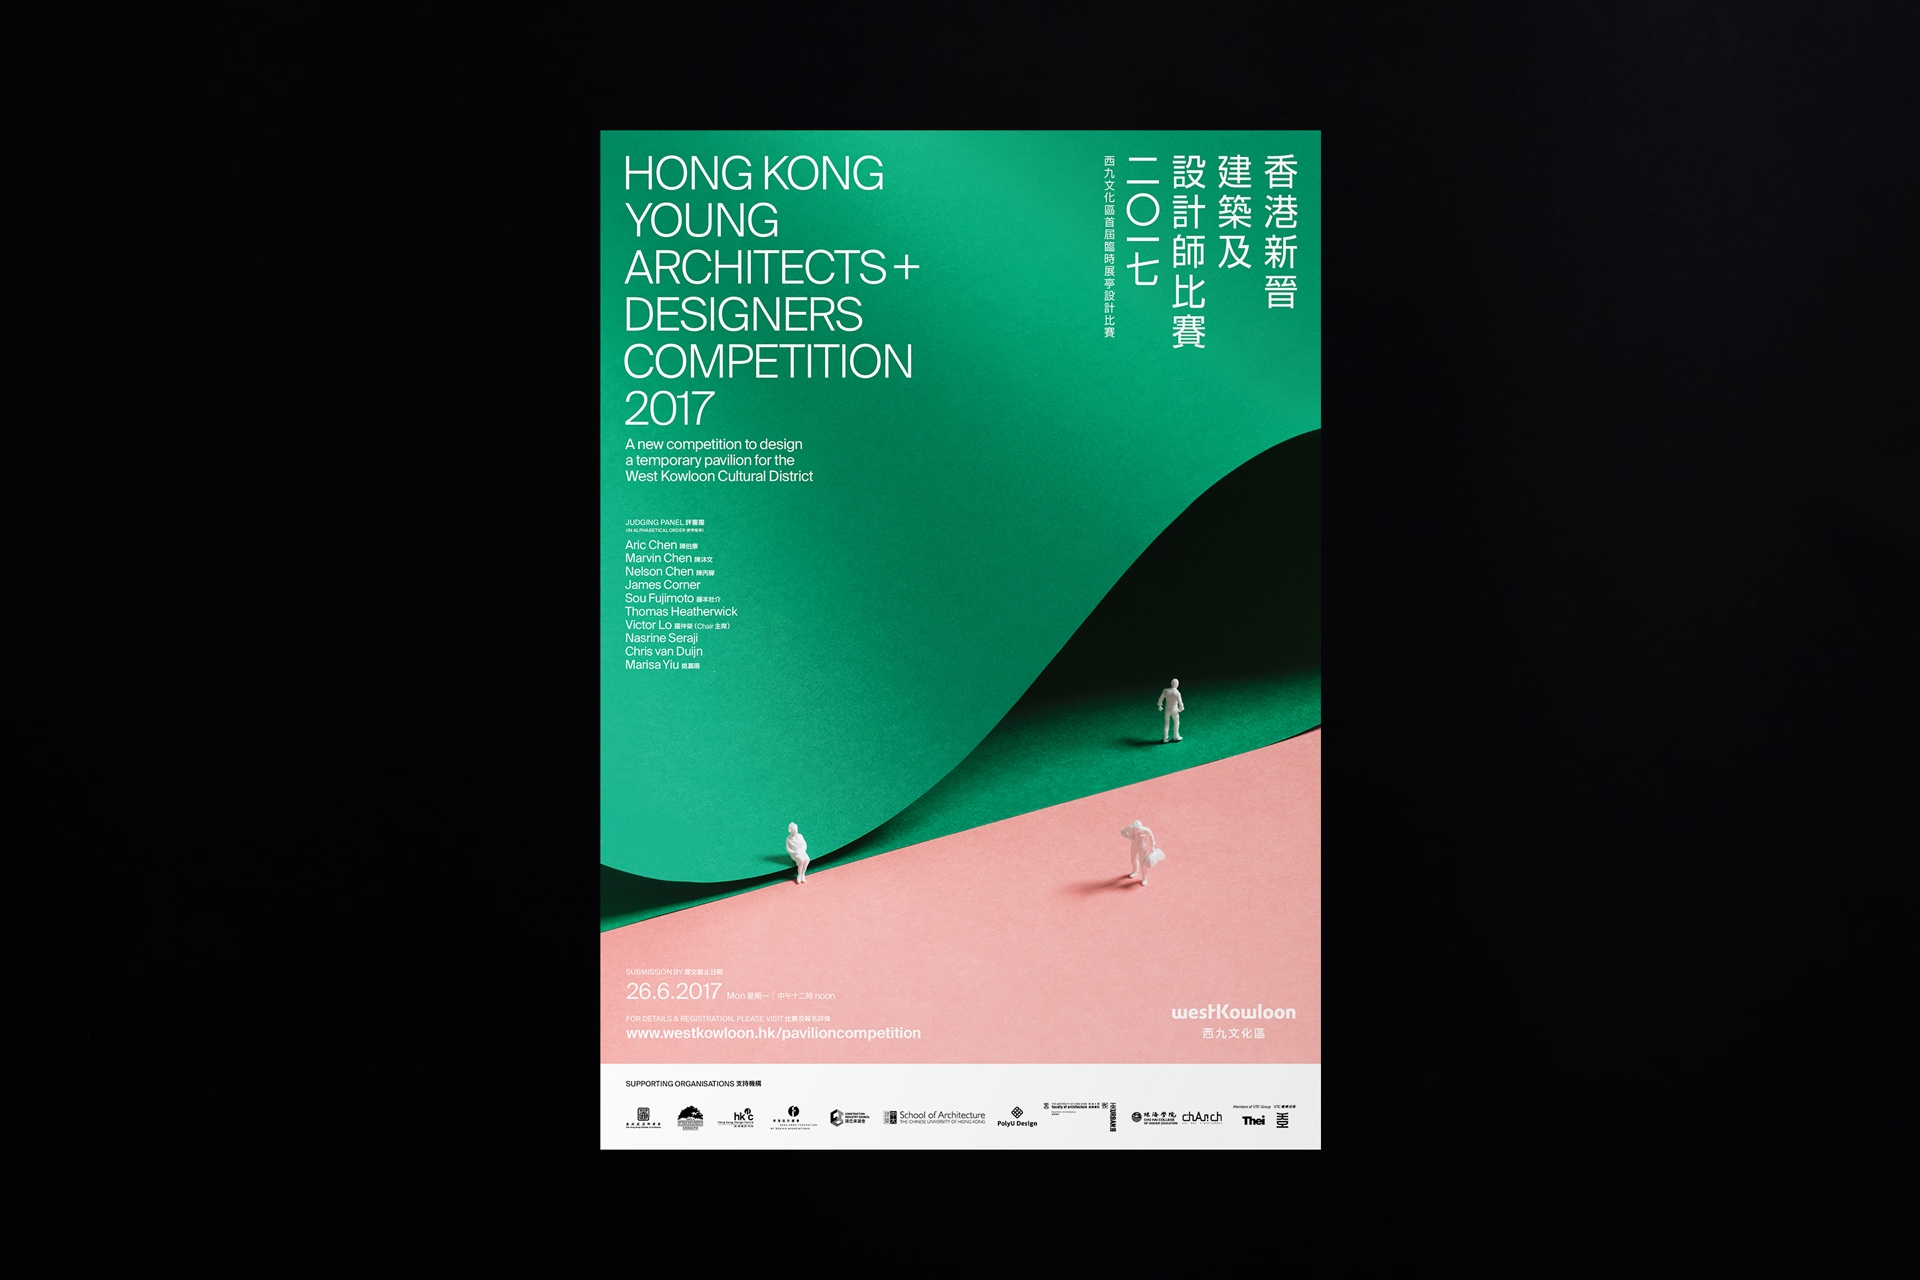 hong-kong-young-architects-designers-competition-2017_02